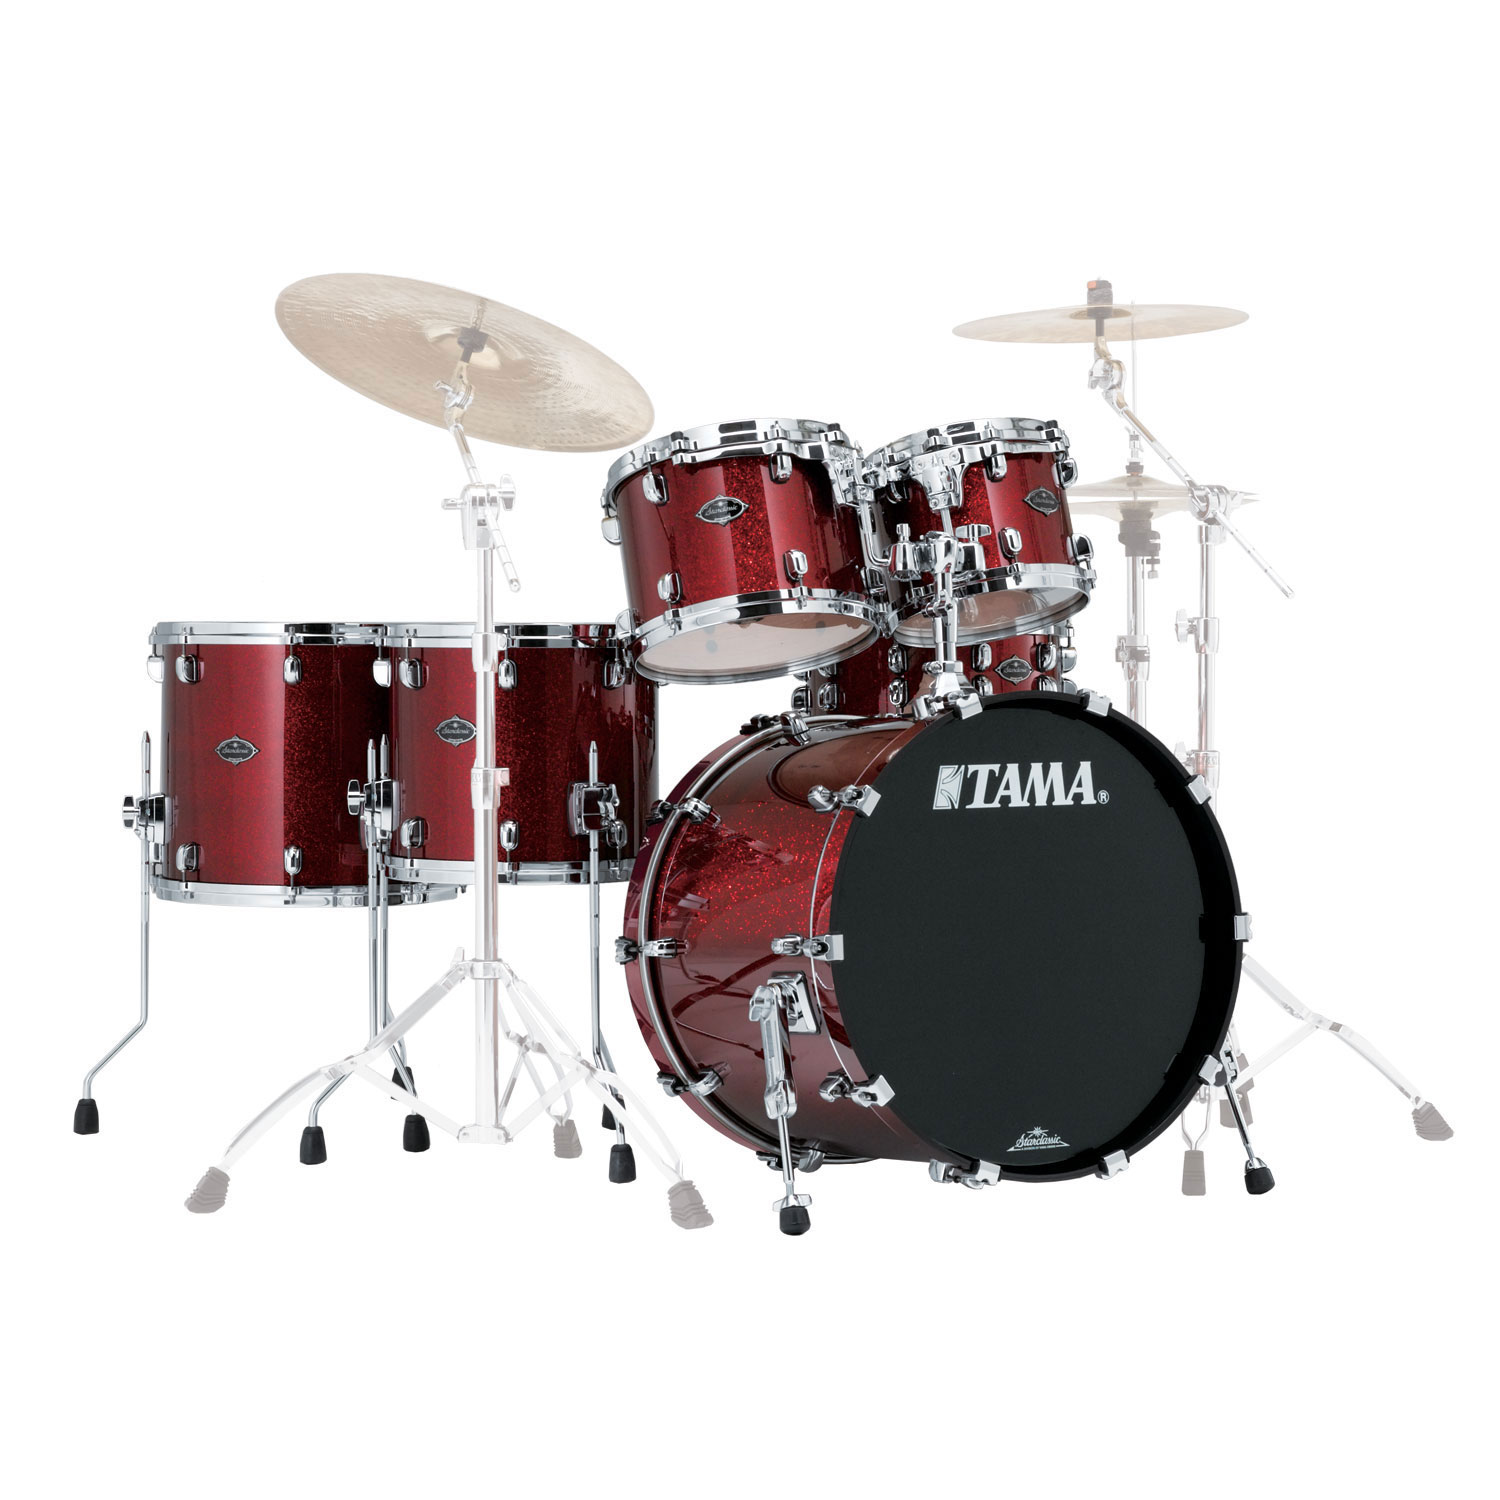 "Tama Starclassic Performer B/B 6-Piece Drum Set with Hardware (22"" Bass, 10/12/14/16"" Toms, 14"" Snare)"